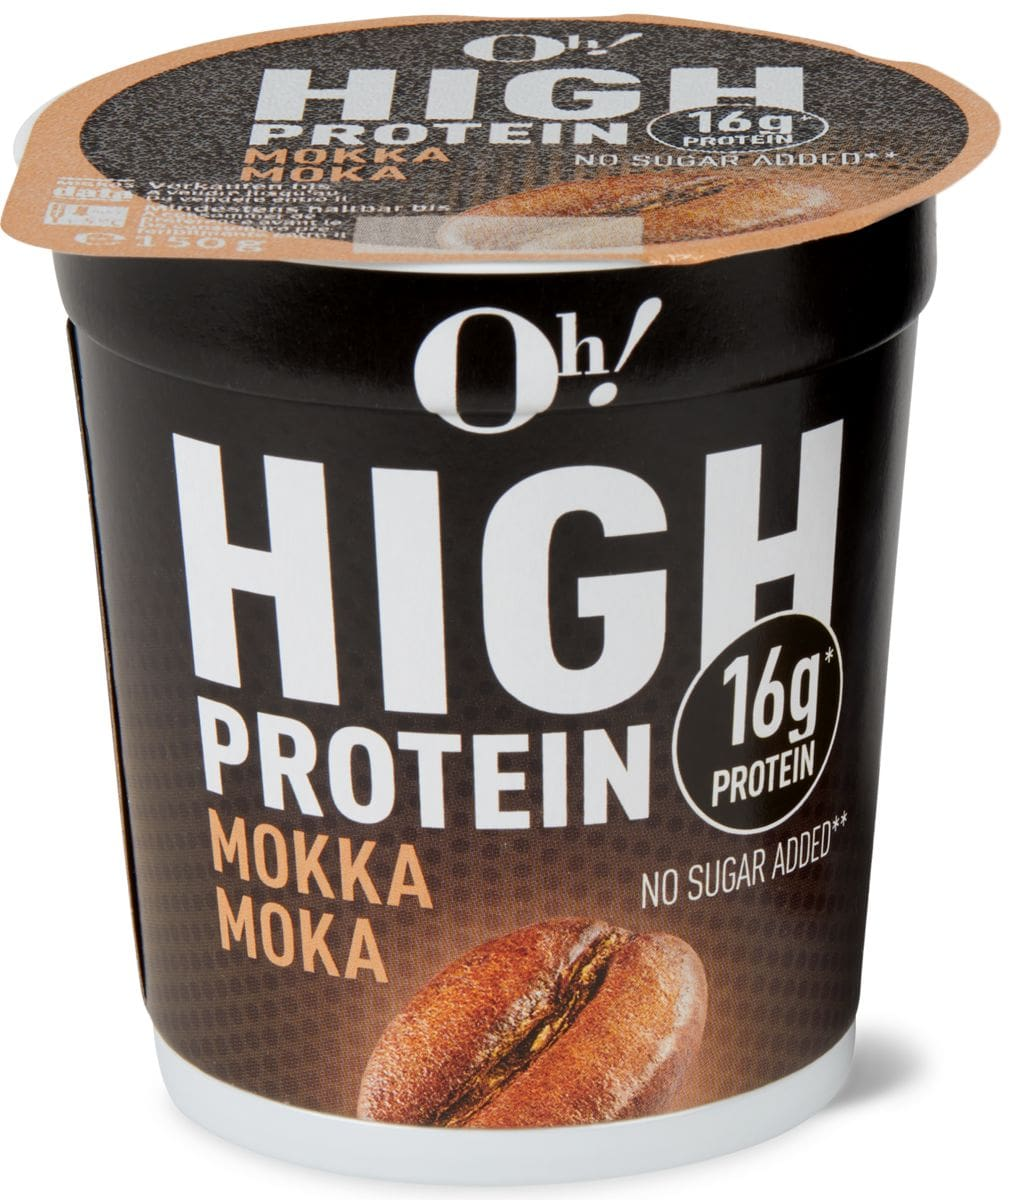 Oh! High Protein moca